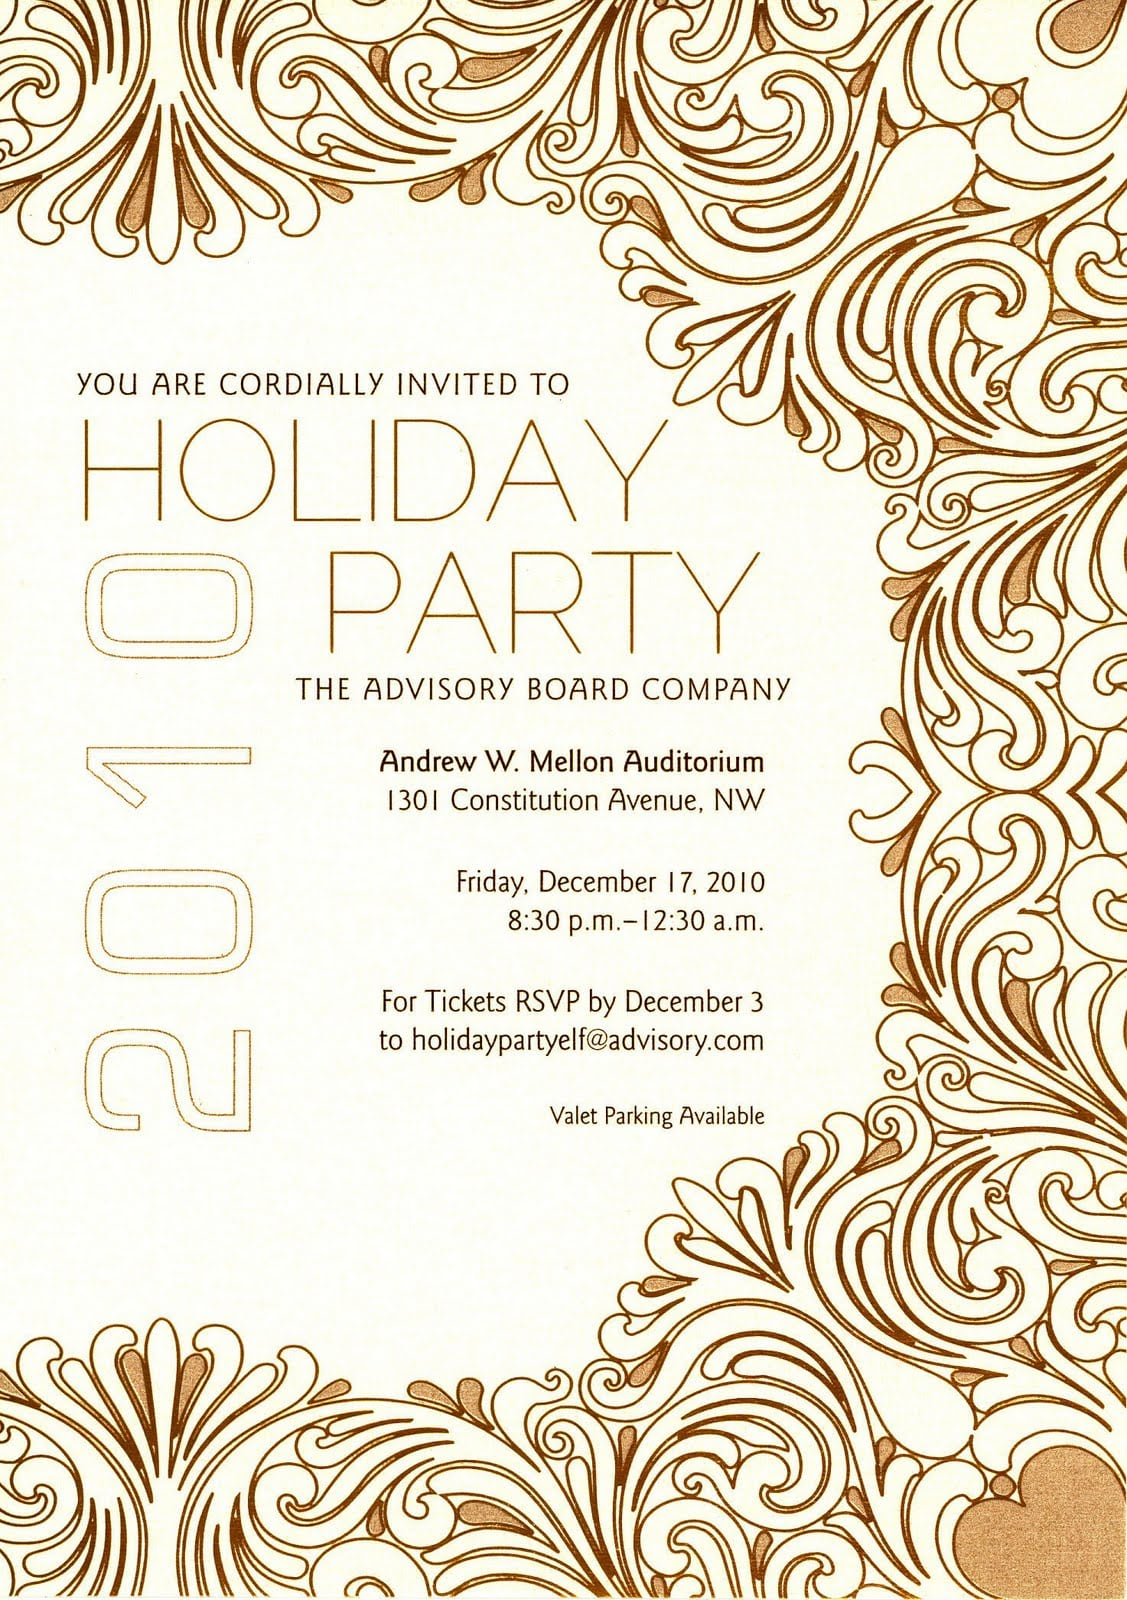 General Party Invitations - Mickey Mouse Invitations Templates